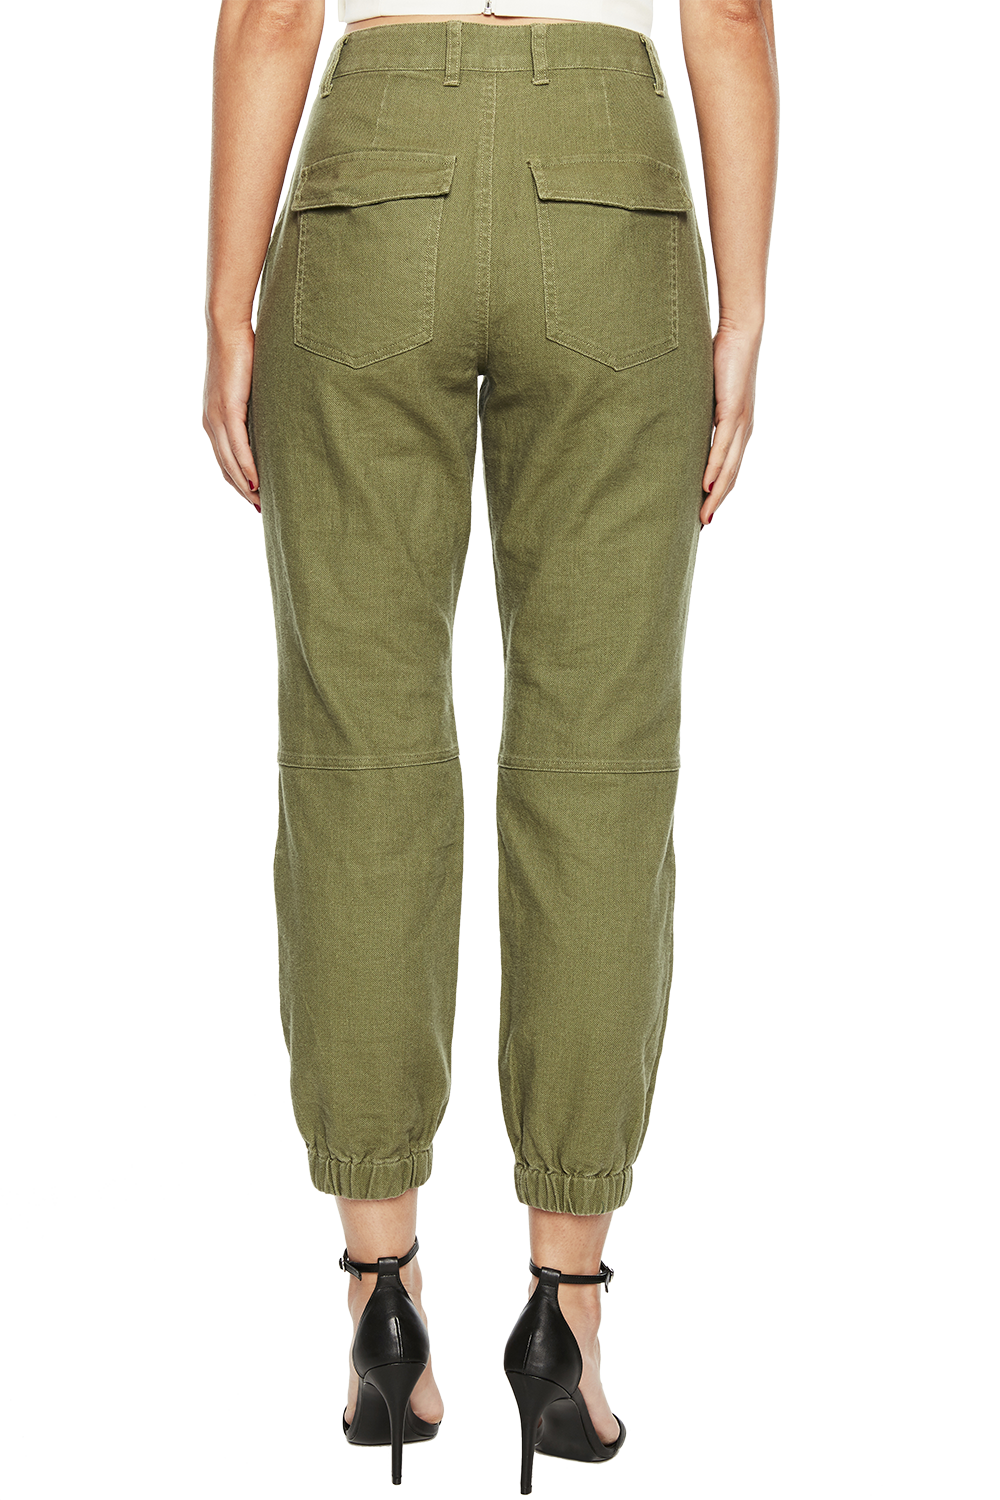 KHAKI CARGO PANT in colour BURNT OLIVE